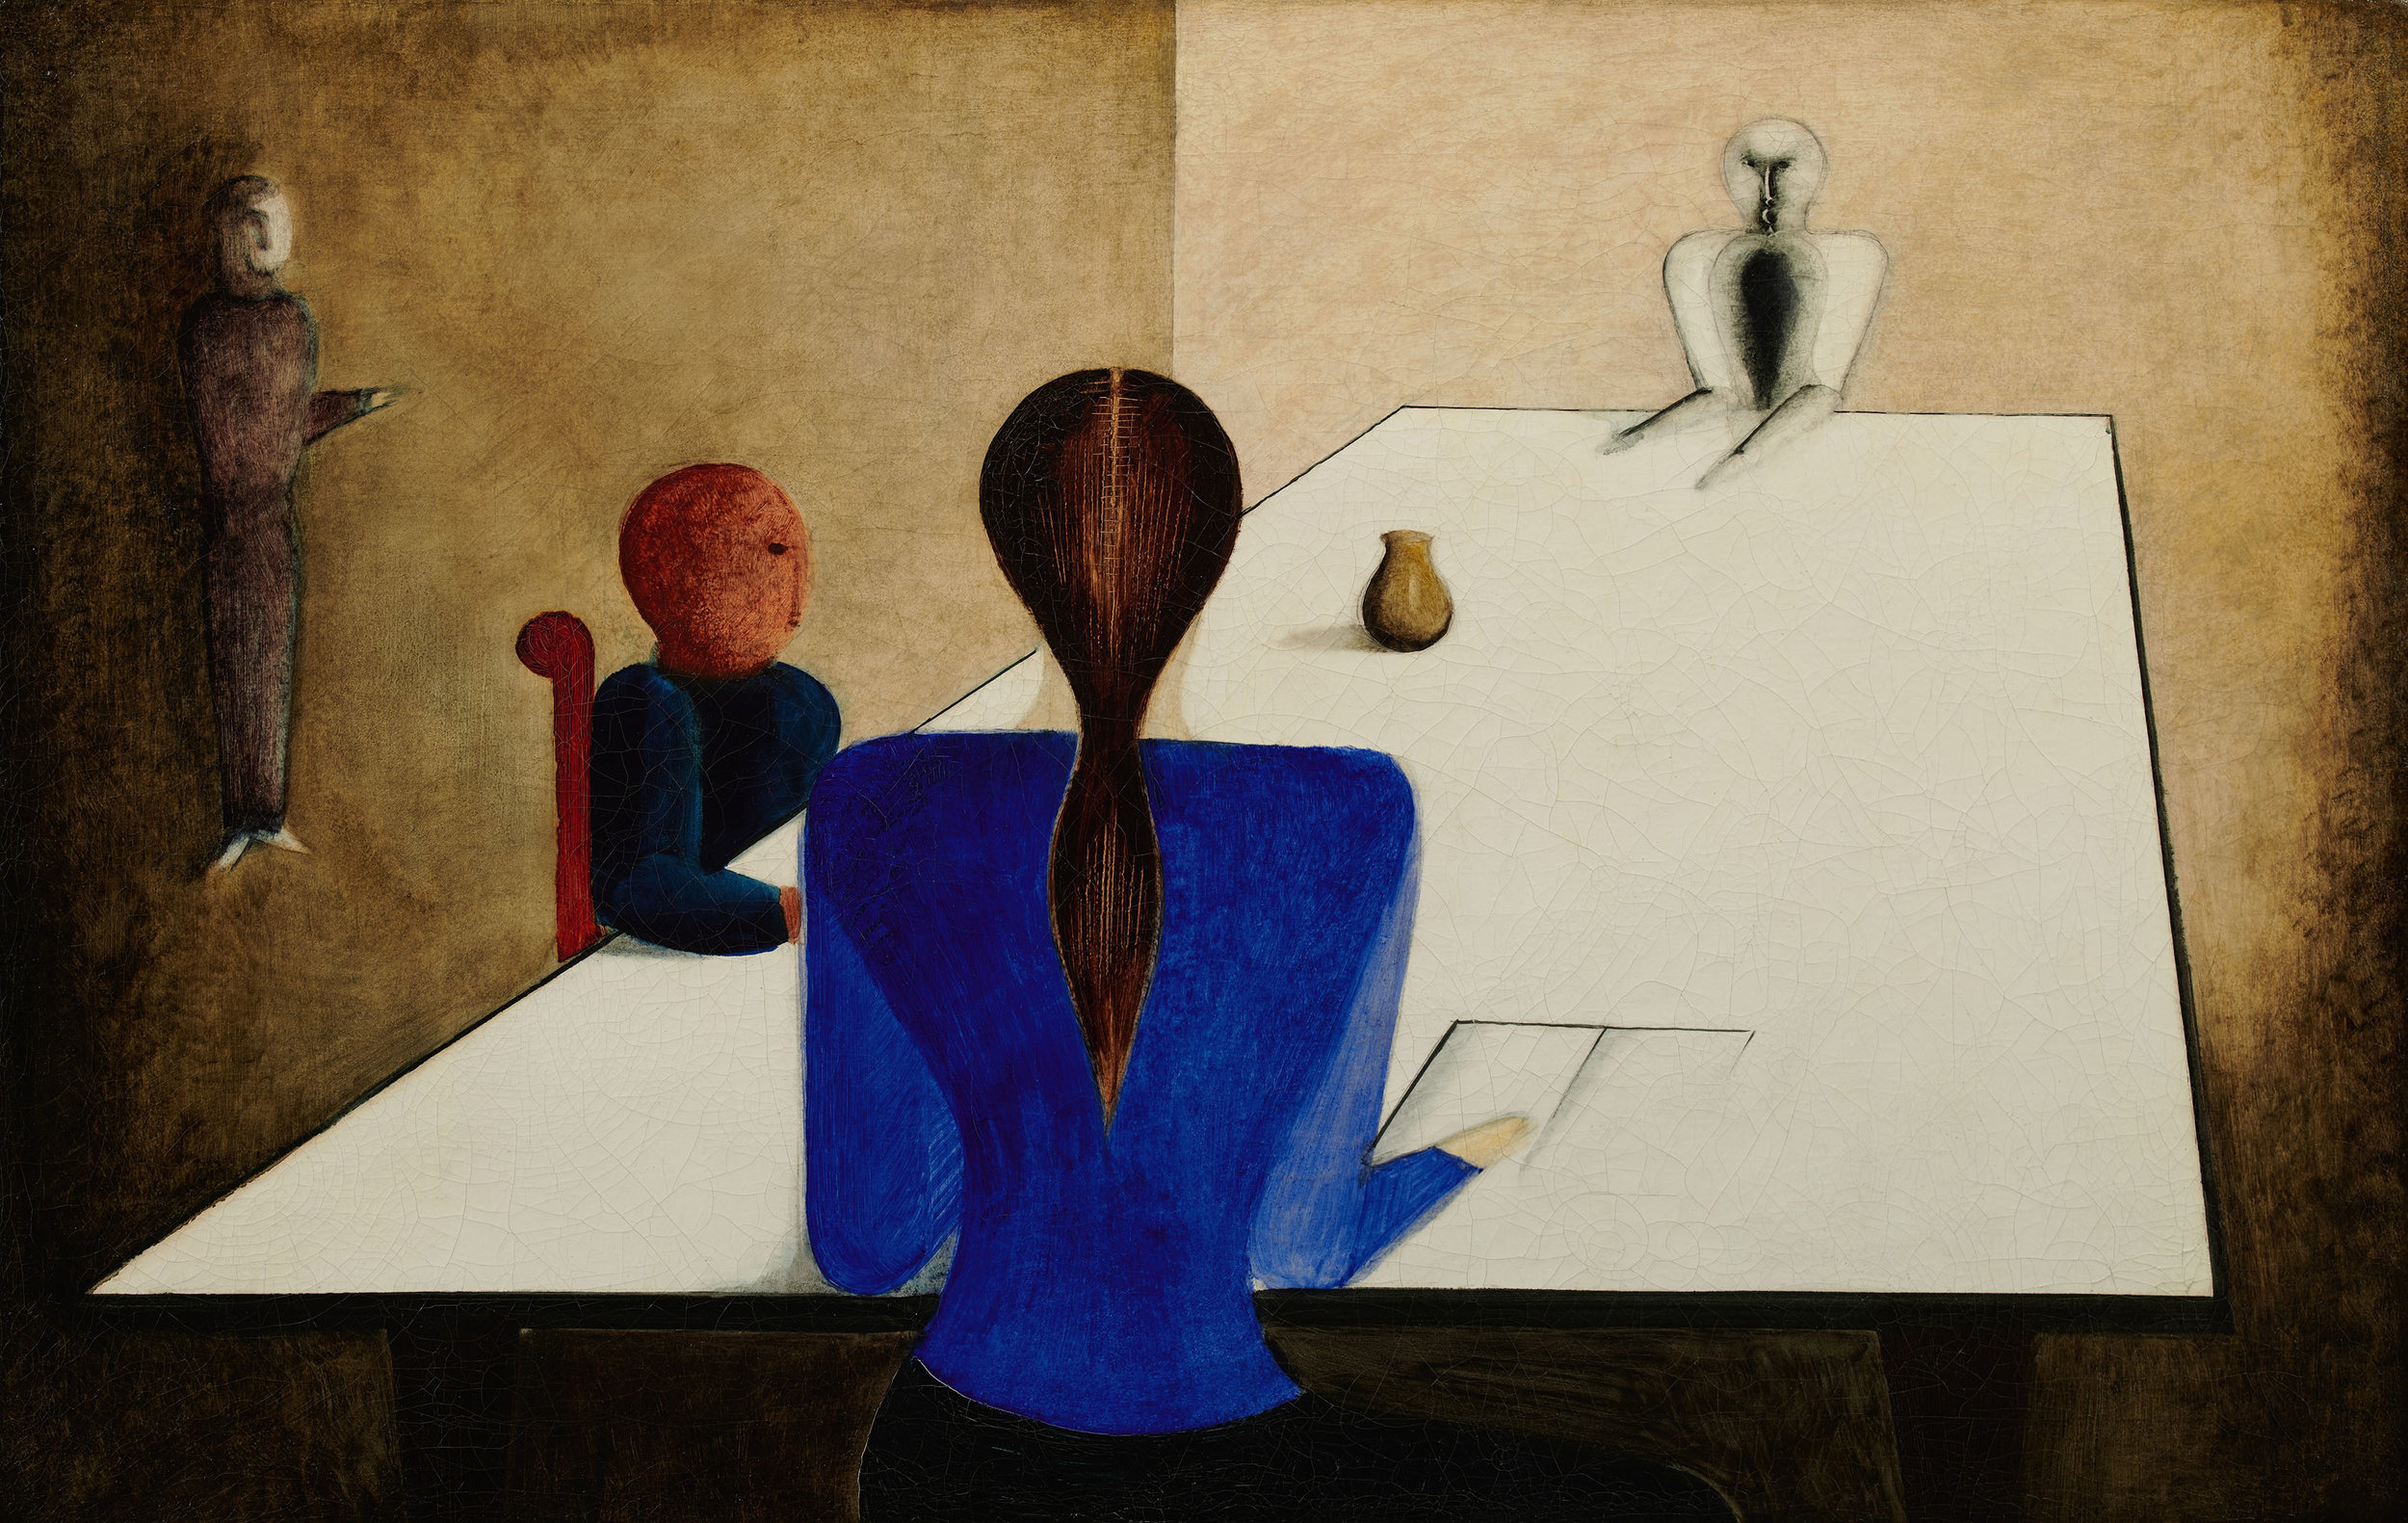 Lot 11 Oskar Schlemmer, Tischgesellschaft (Group at Table), 1923 (est. £1,000,000-1,500,000)